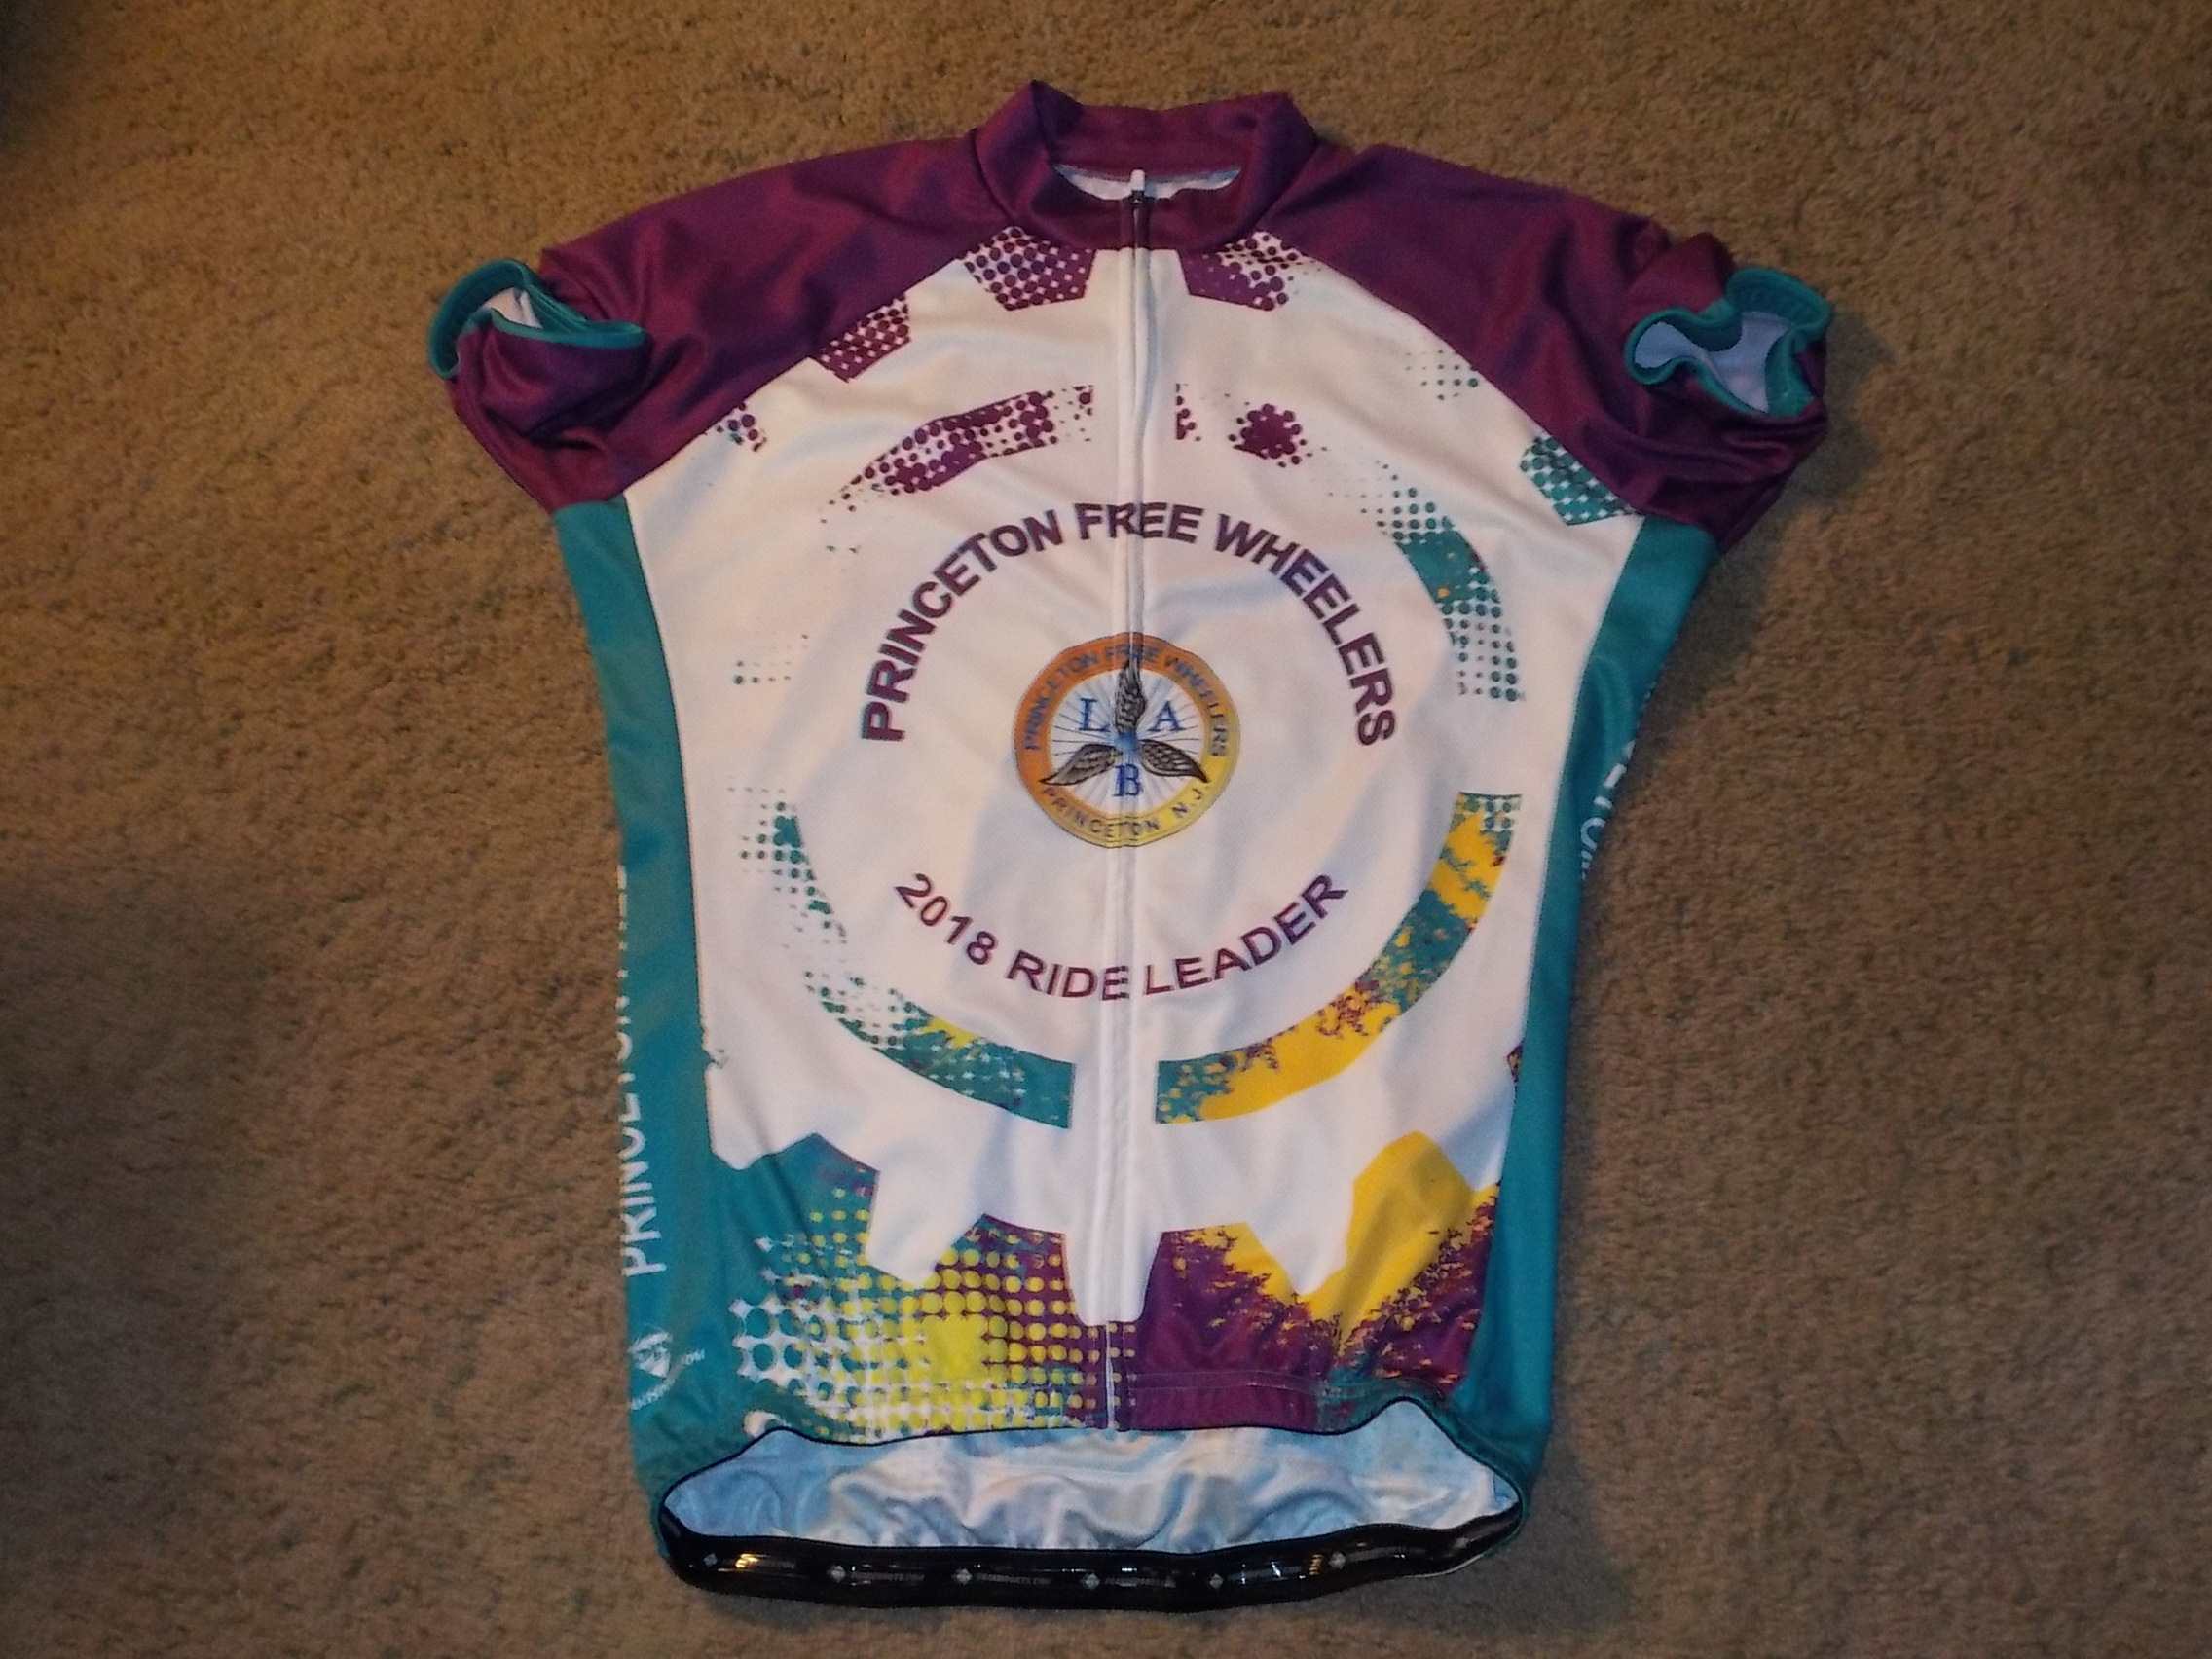 2018 Ride leader jersey